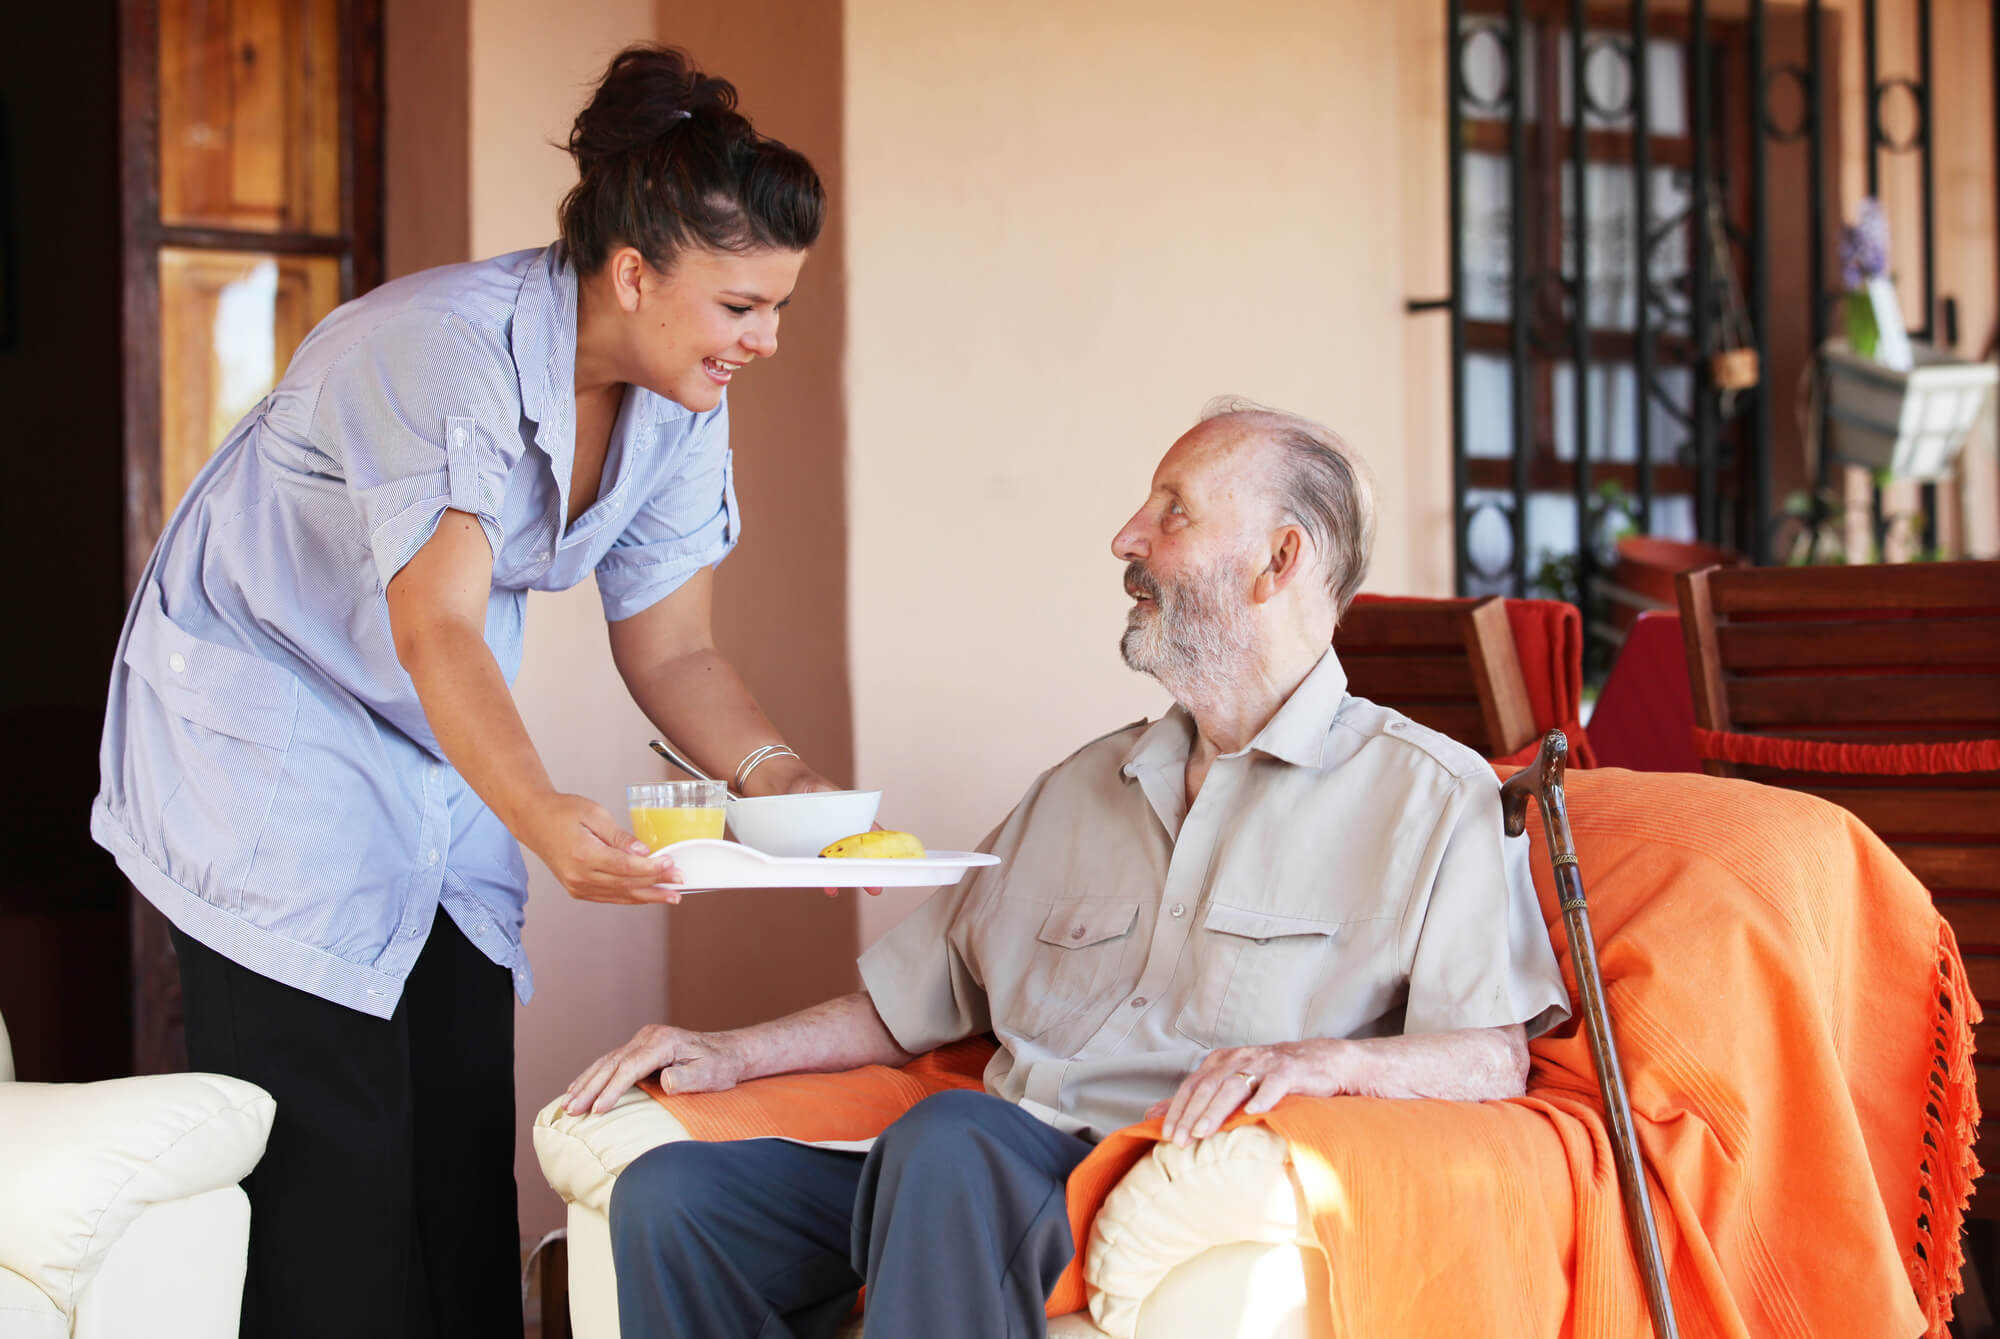 A nurse providing Personalized Home Care New York to a man sitting in an orange chair.